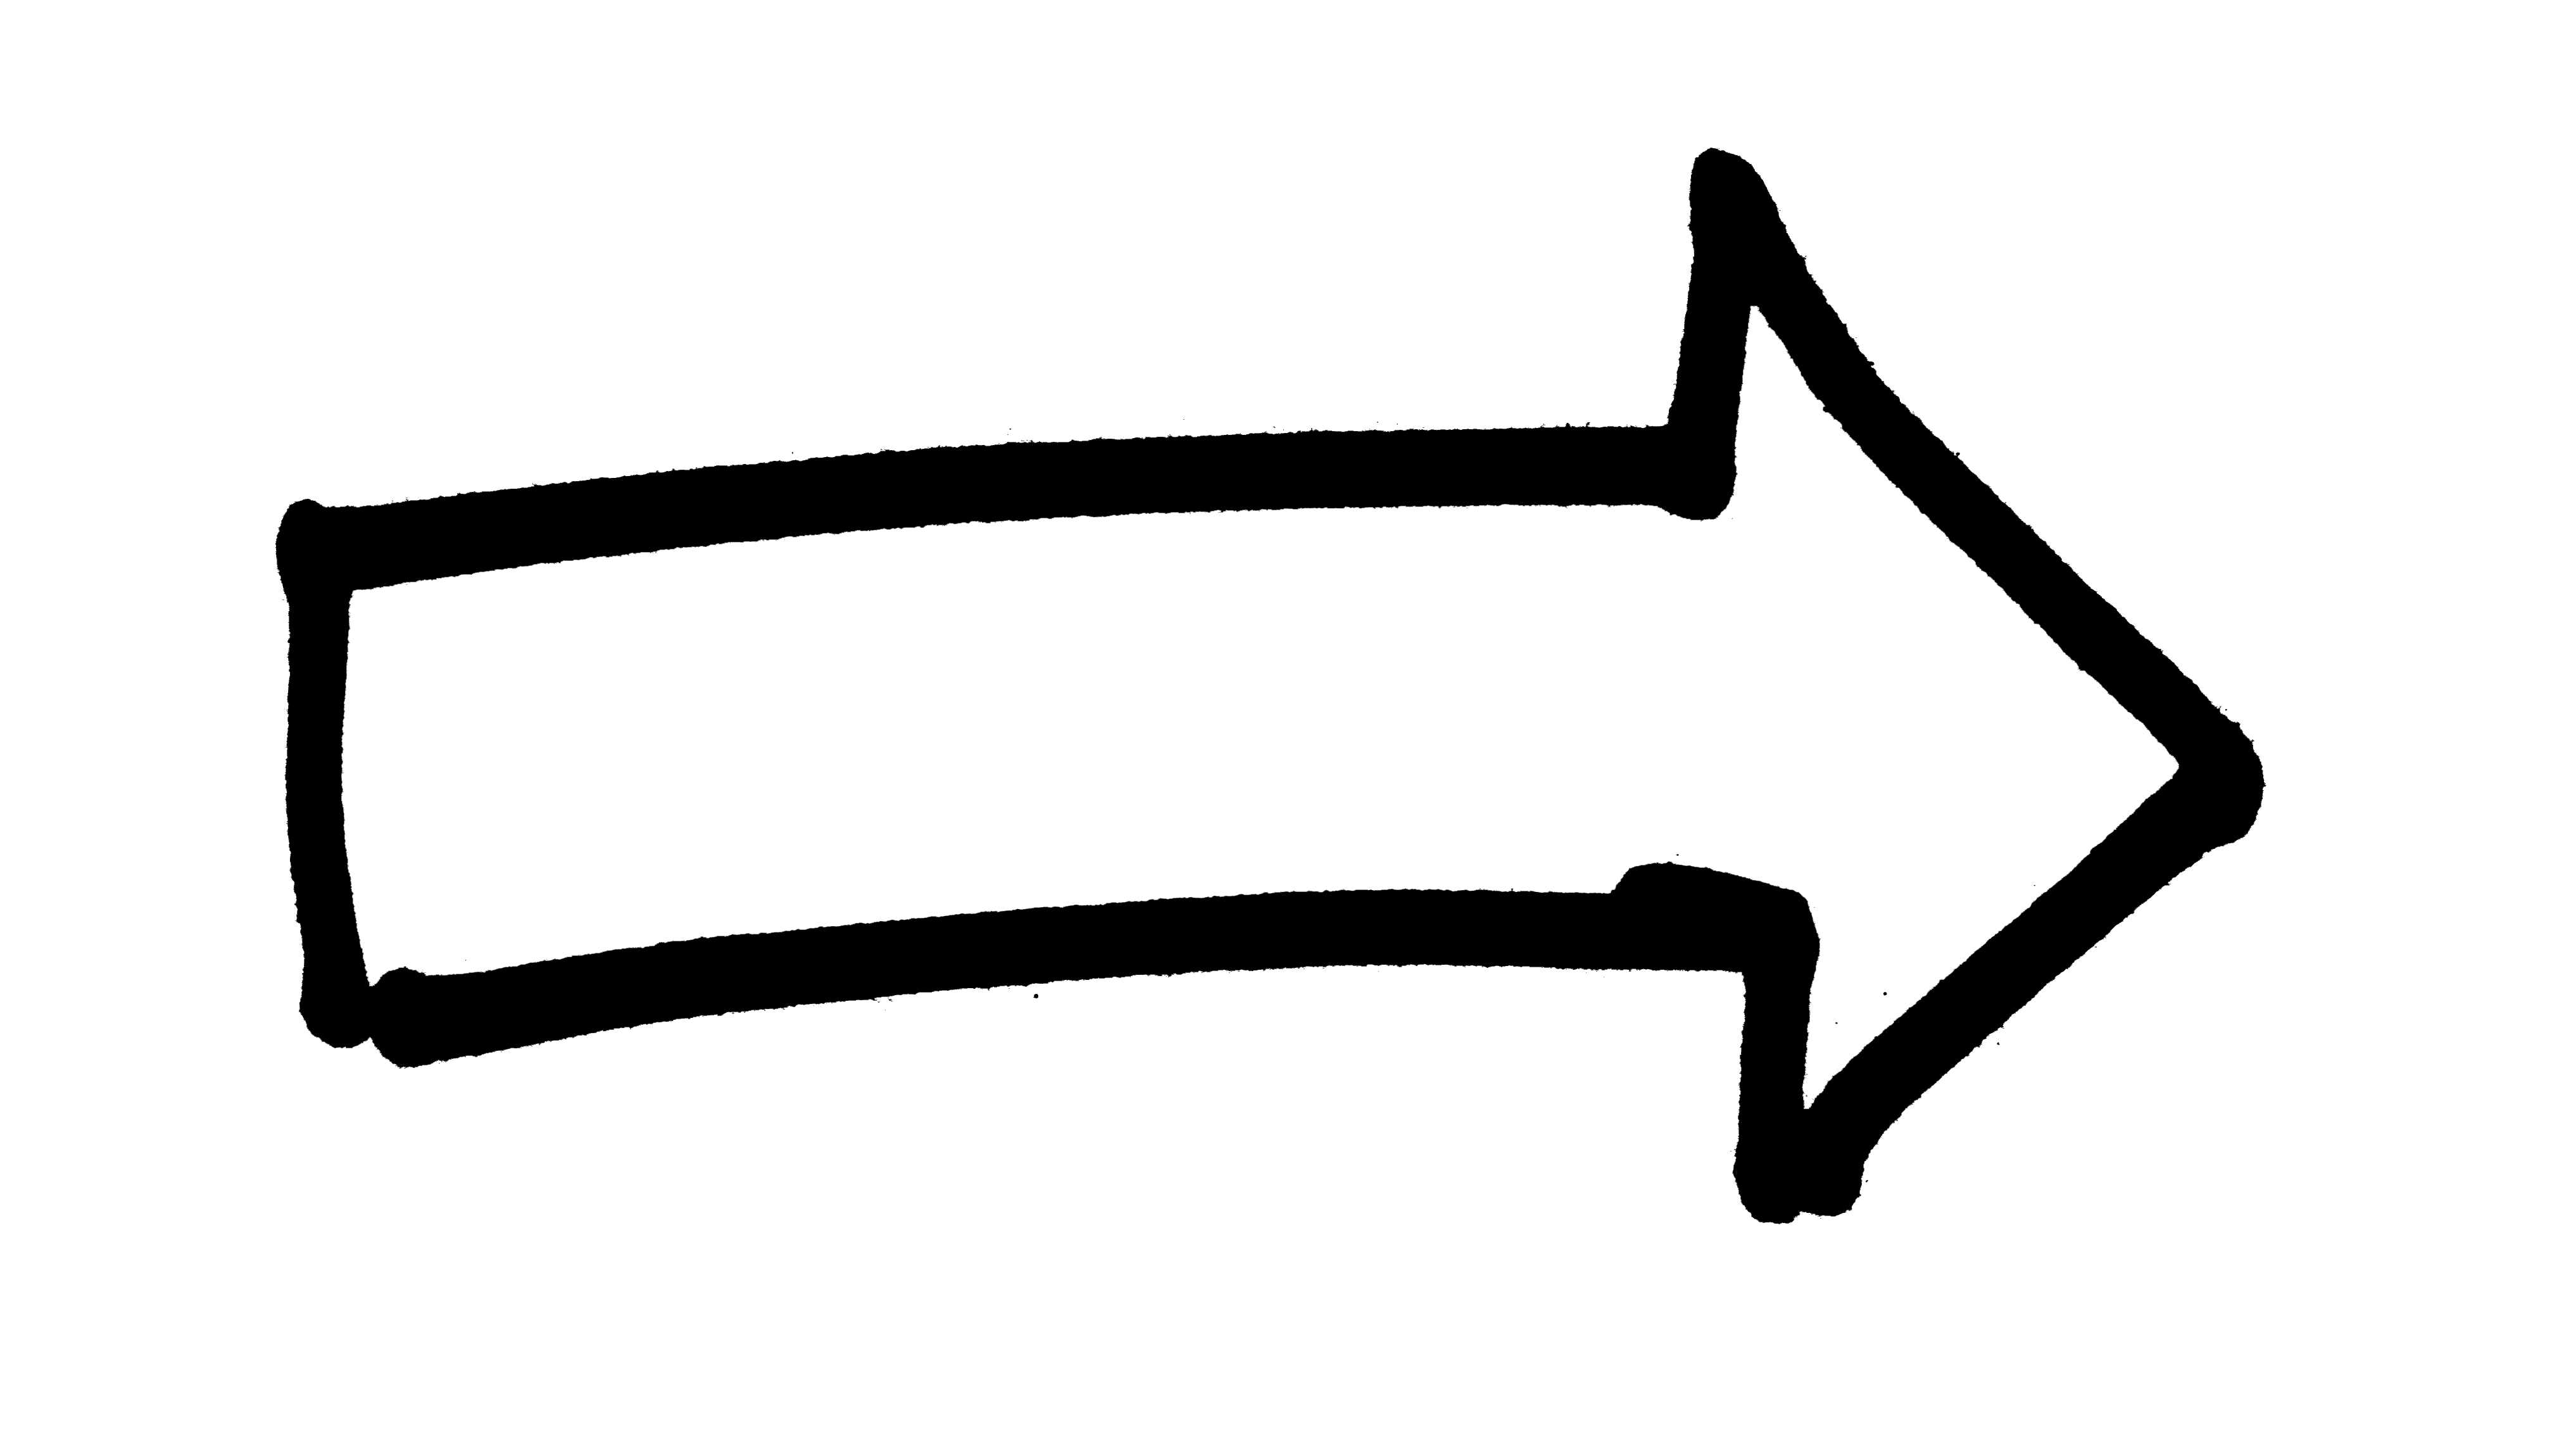 Transparent check blank background. Arrow all